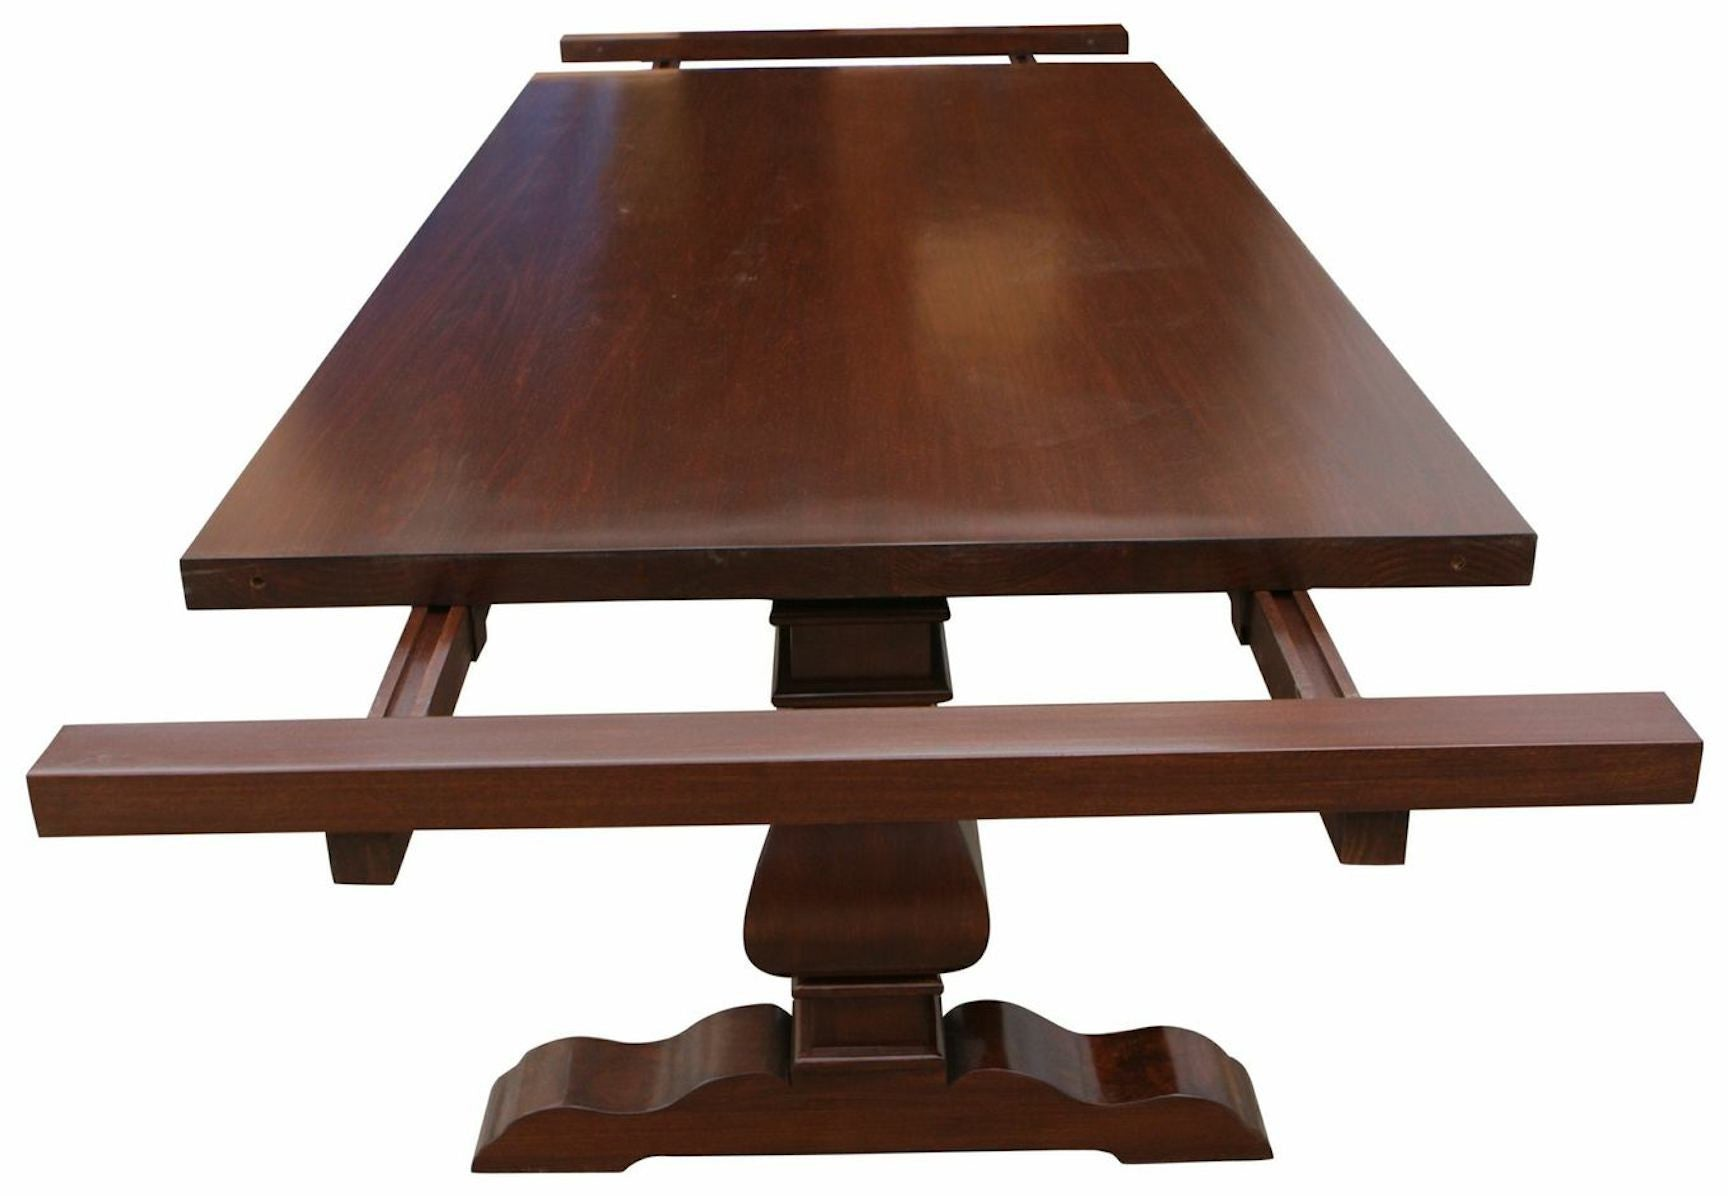 100 Custom Dining Table Dining Room Wicker Dining  : custom extension trestle dining table from 45.77.108.62 size 1728 x 1196 jpeg 106kB